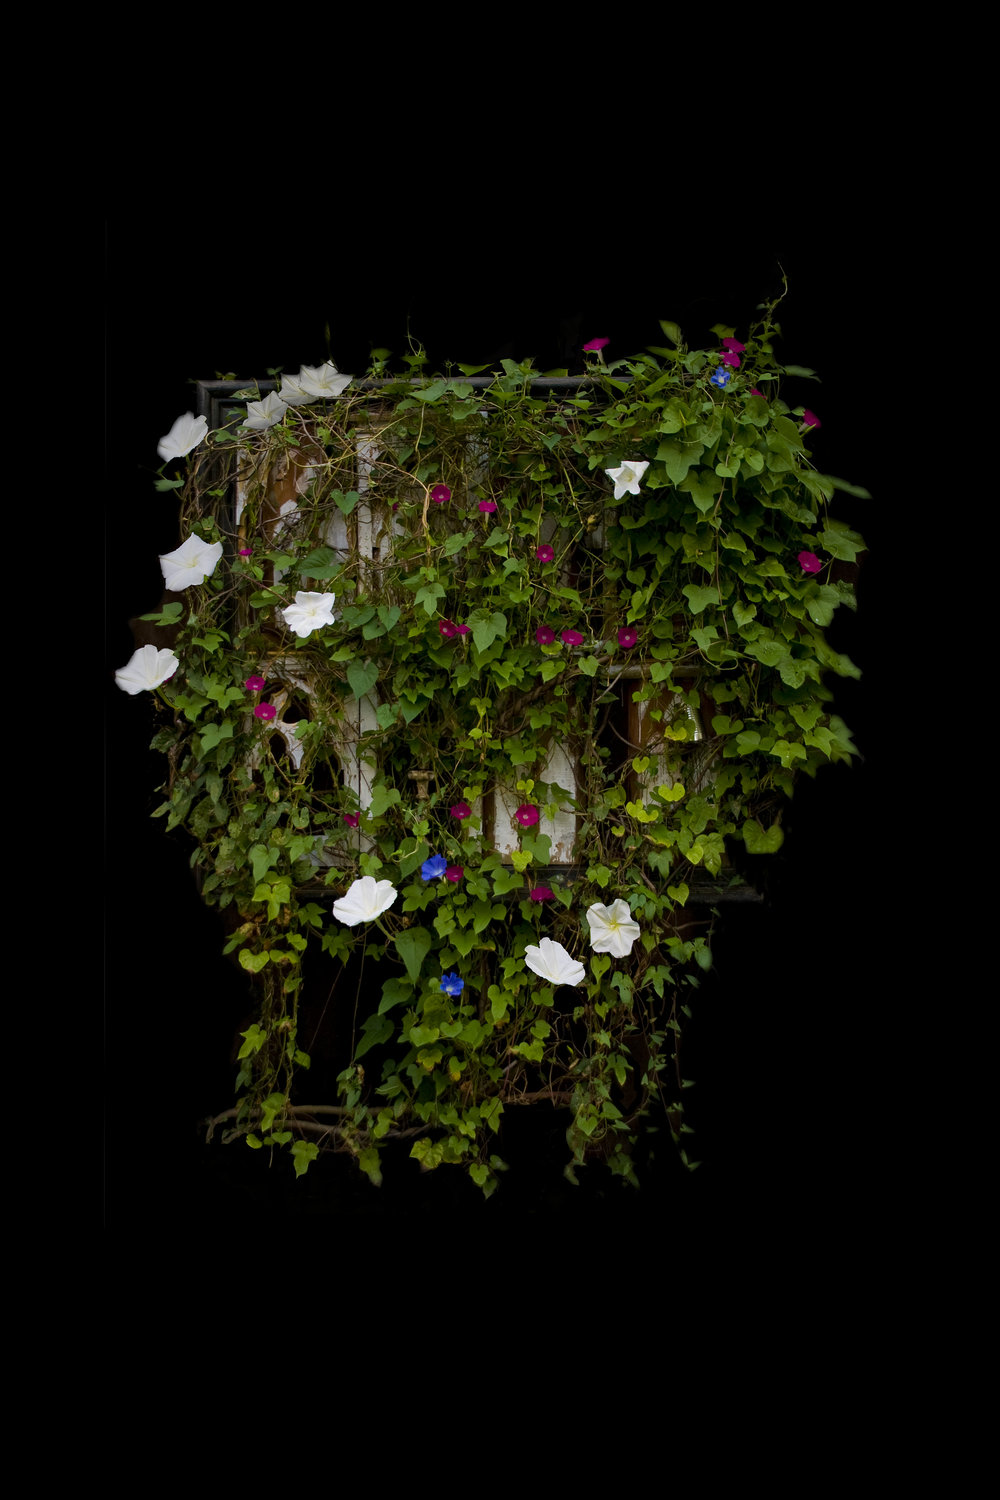 Moonflower Fullbloom, Photograph/Sculpture, Robert Hite, 2010